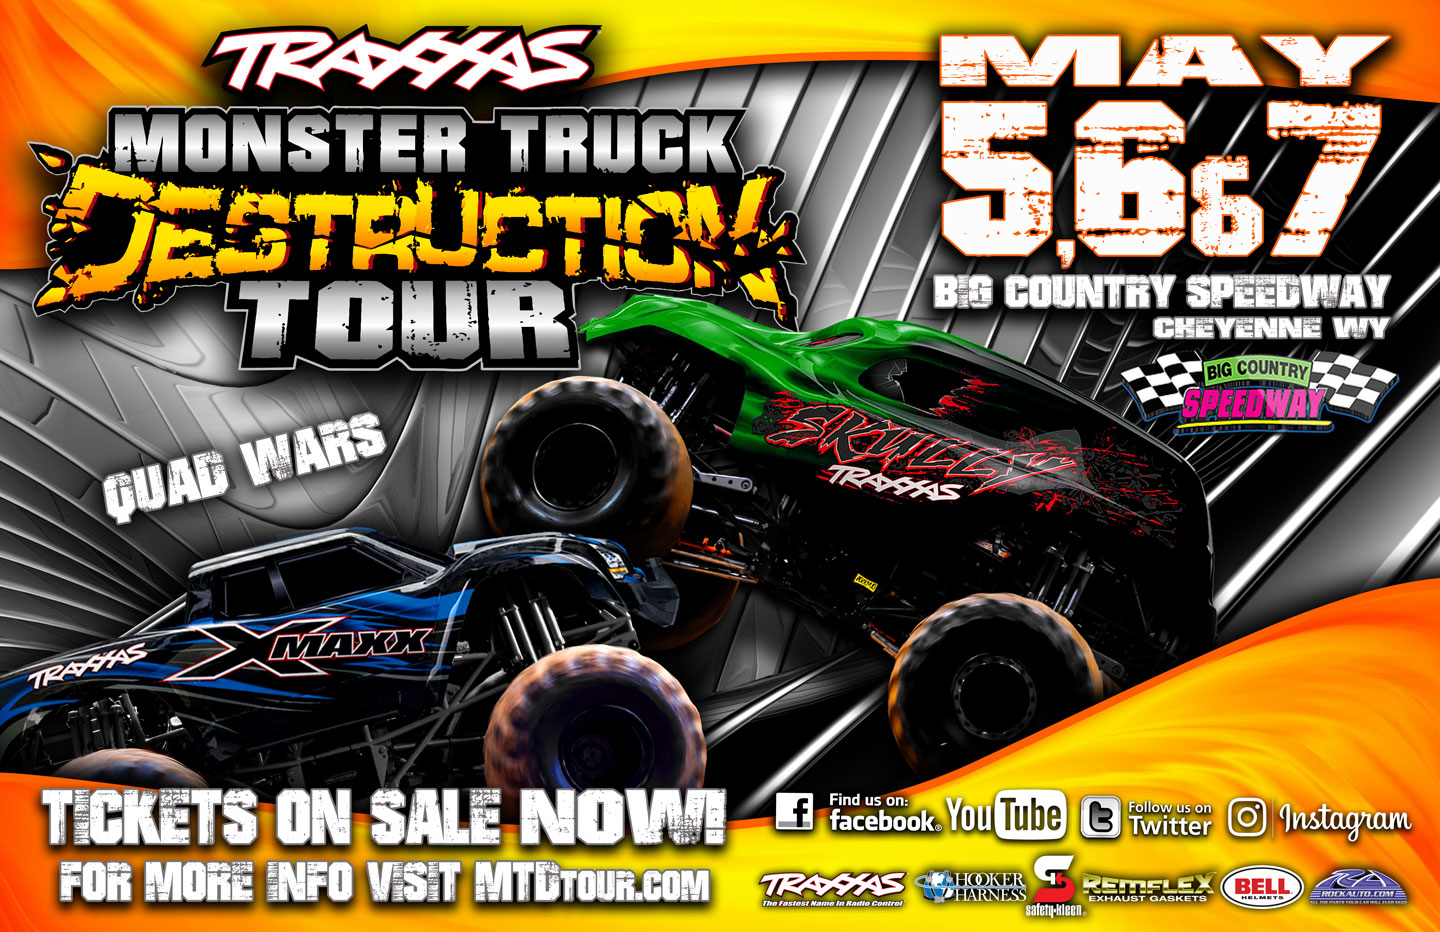 Traxxas Monster Truck Destruction Tour Coming To Big Country Speedway